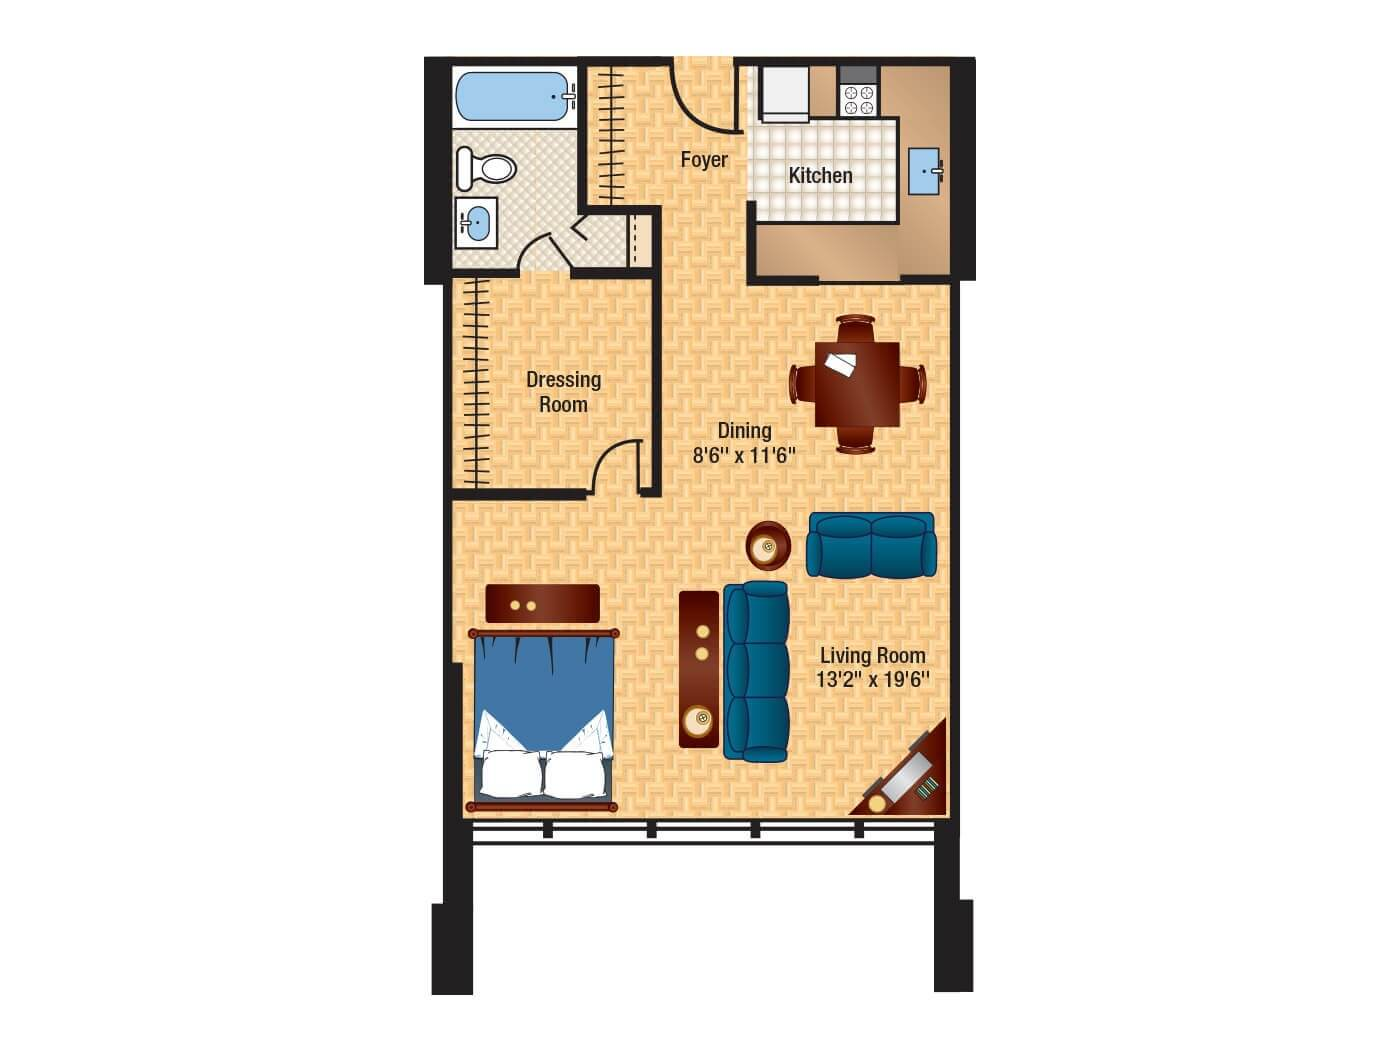 baron apartment building floor plans columbia plaza. Black Bedroom Furniture Sets. Home Design Ideas